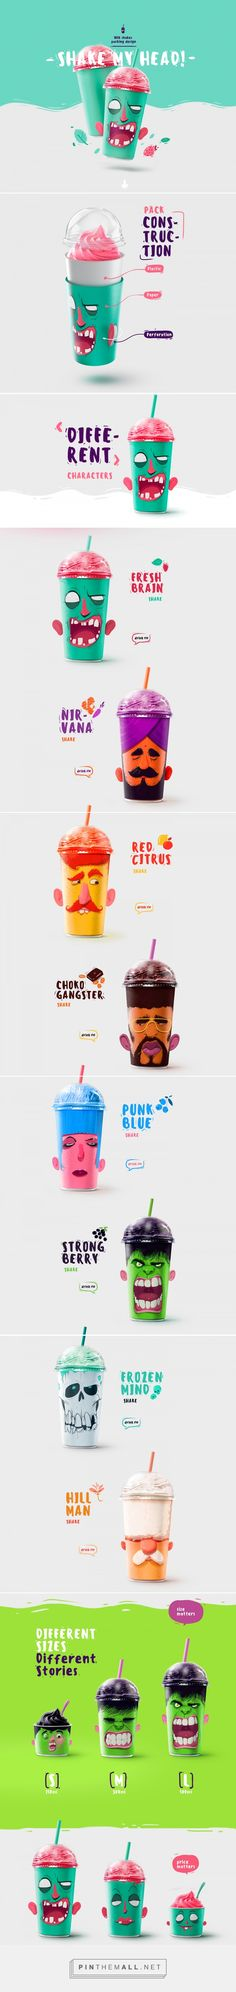 Shake my head - the milk shakes packing design  Illustration Graphic Design Packaging